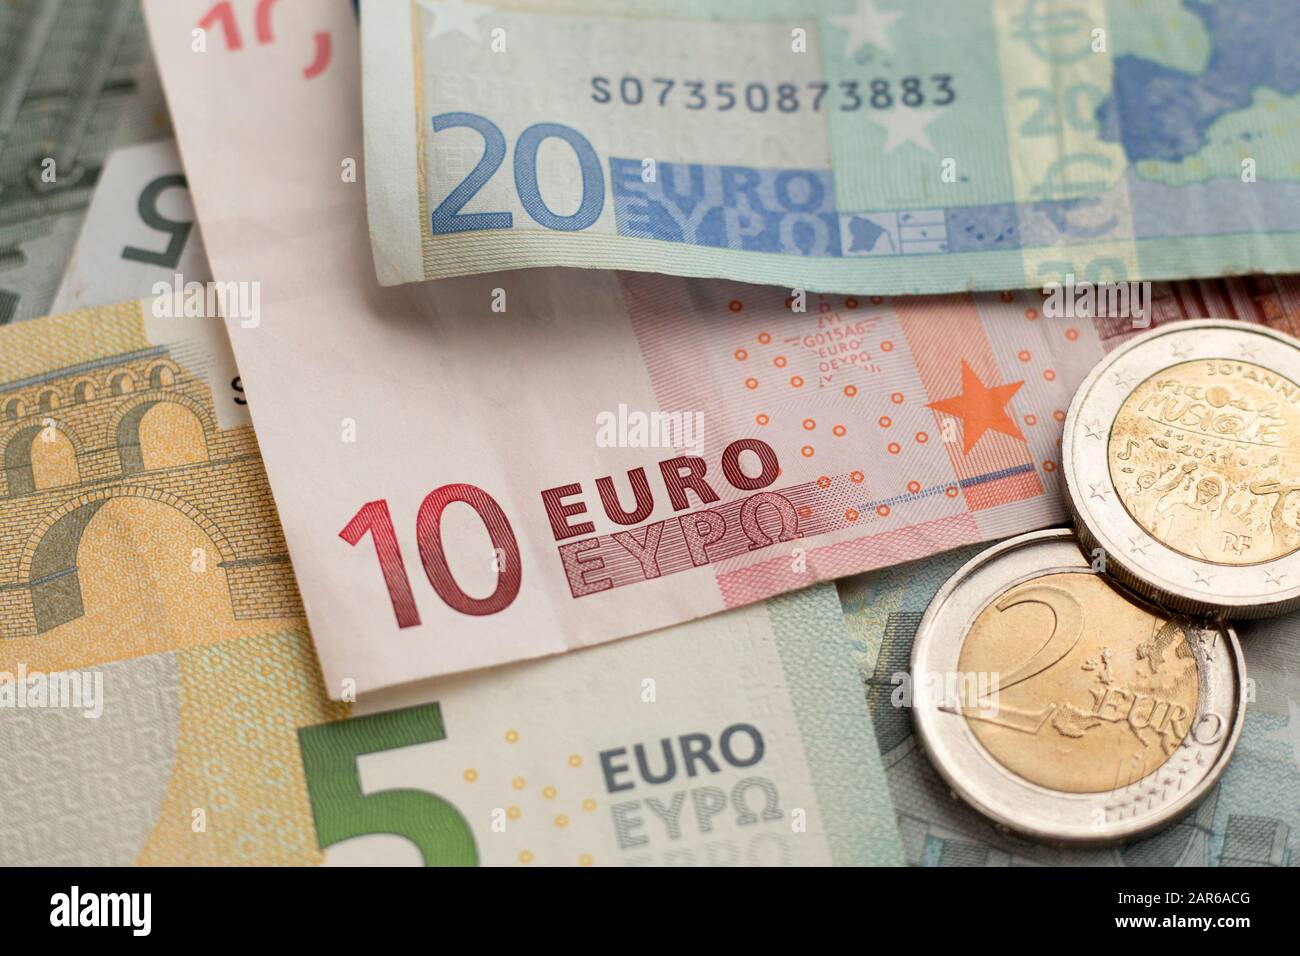 Tax planning concept for business, finance, banking, budgeting, economic topics. Euro paper banknotes and coins background. Selective focus Stock Photo